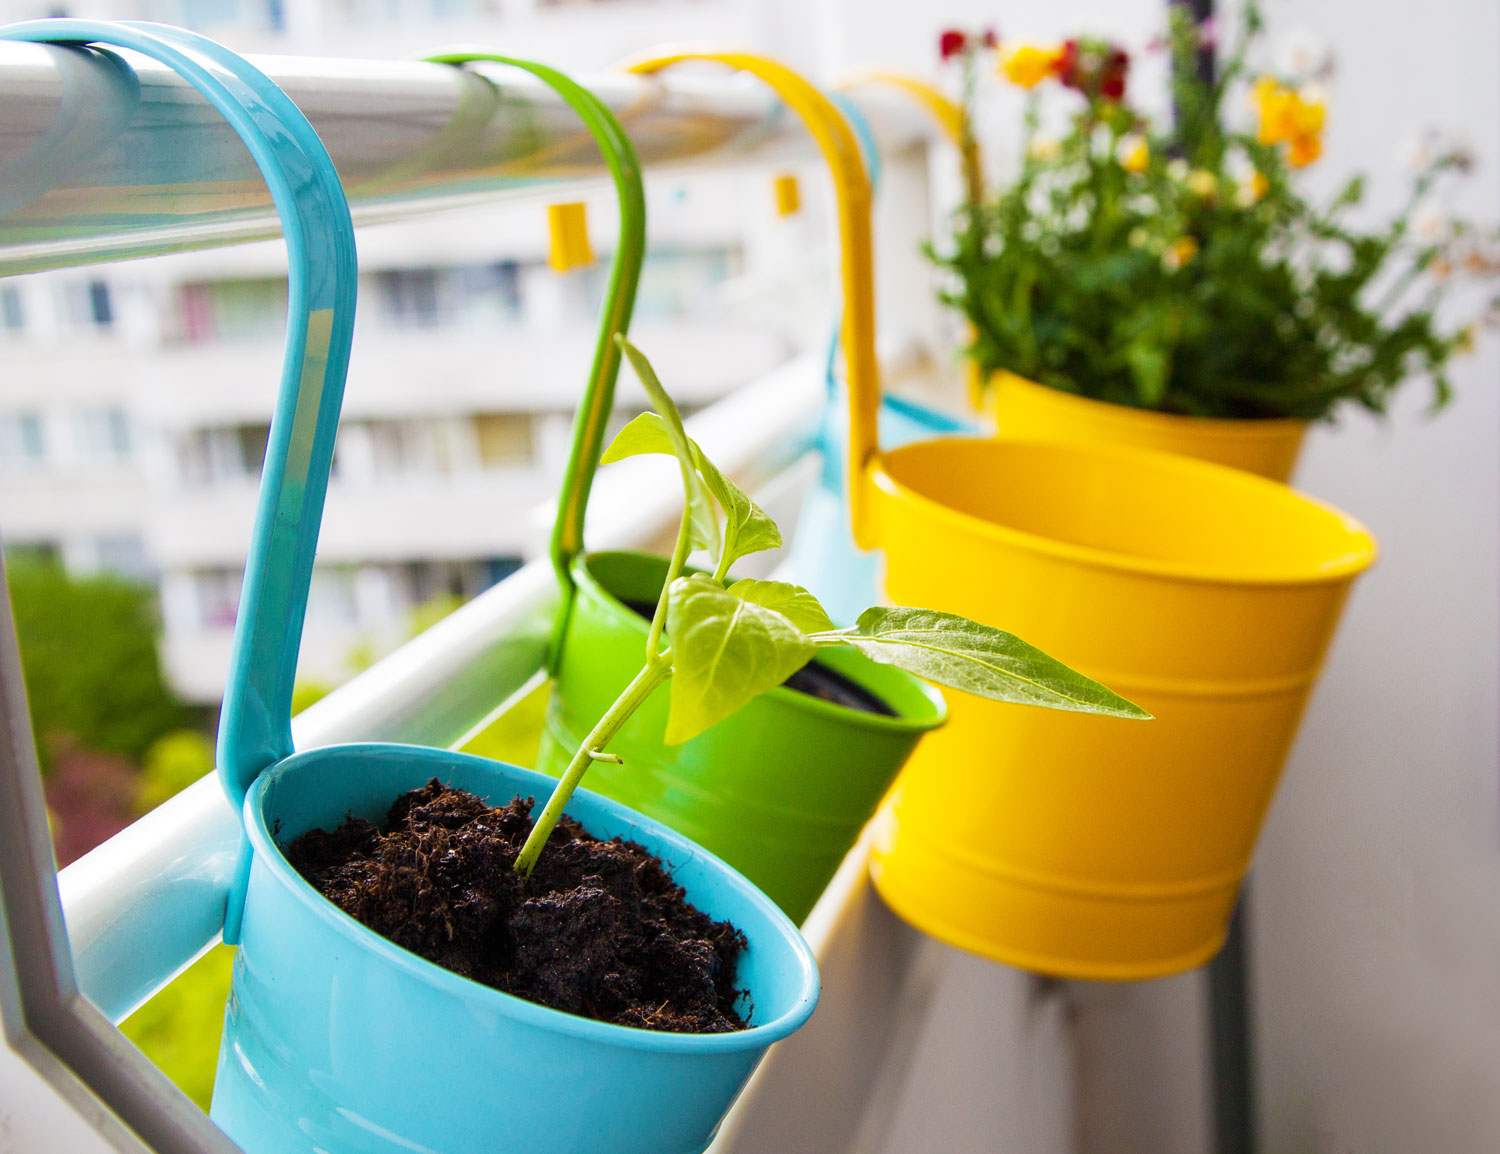 Even small spaces can be cozy niches for nature. Bright blue, green, and yellow planters hang on an urban balcony railing with colorful plants growing in them.